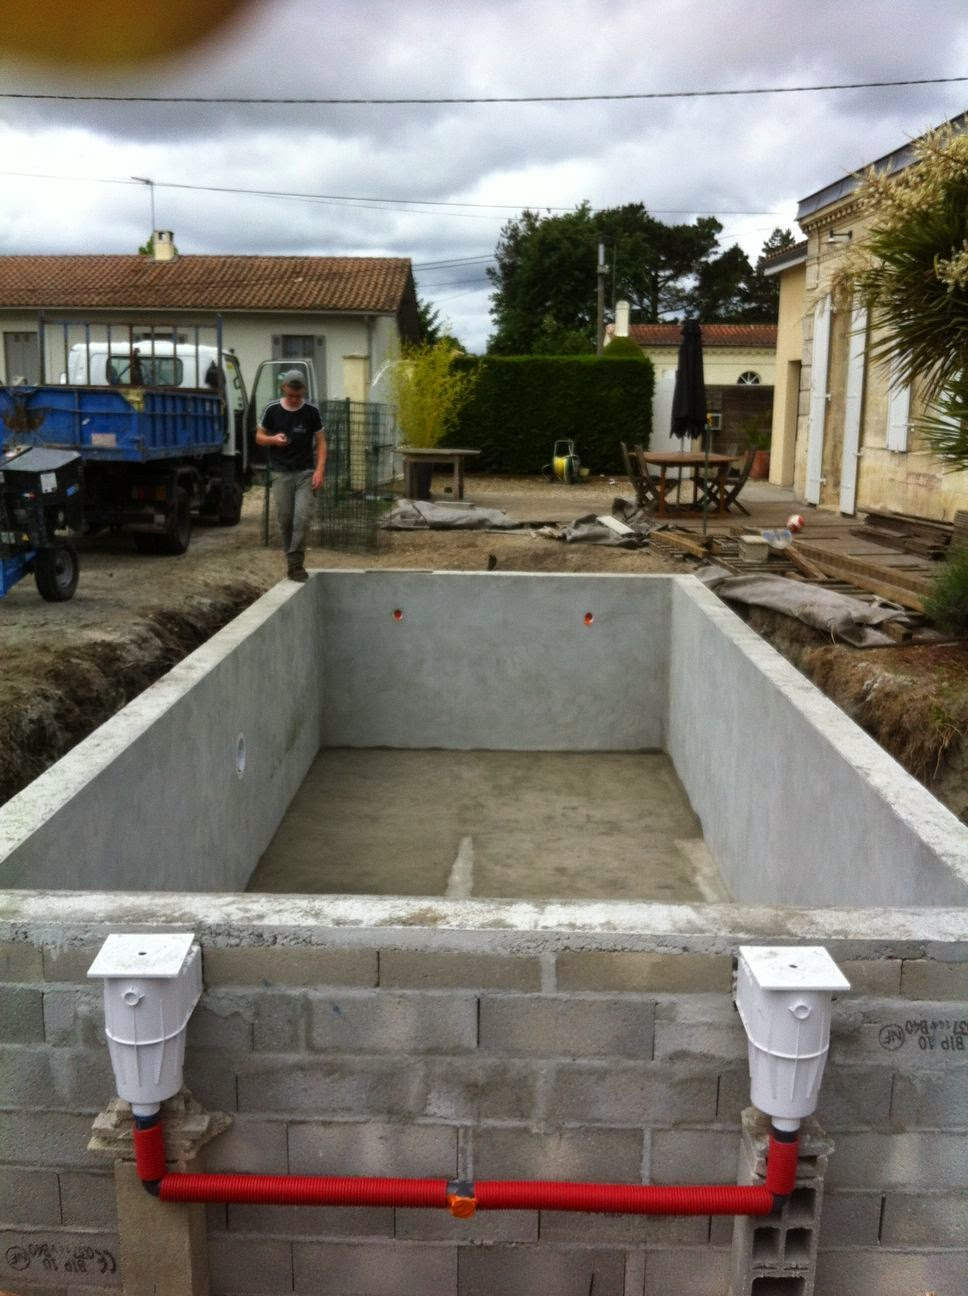 Projet tapes de construction d 39 une piscine en gironde for Construction piscine 33